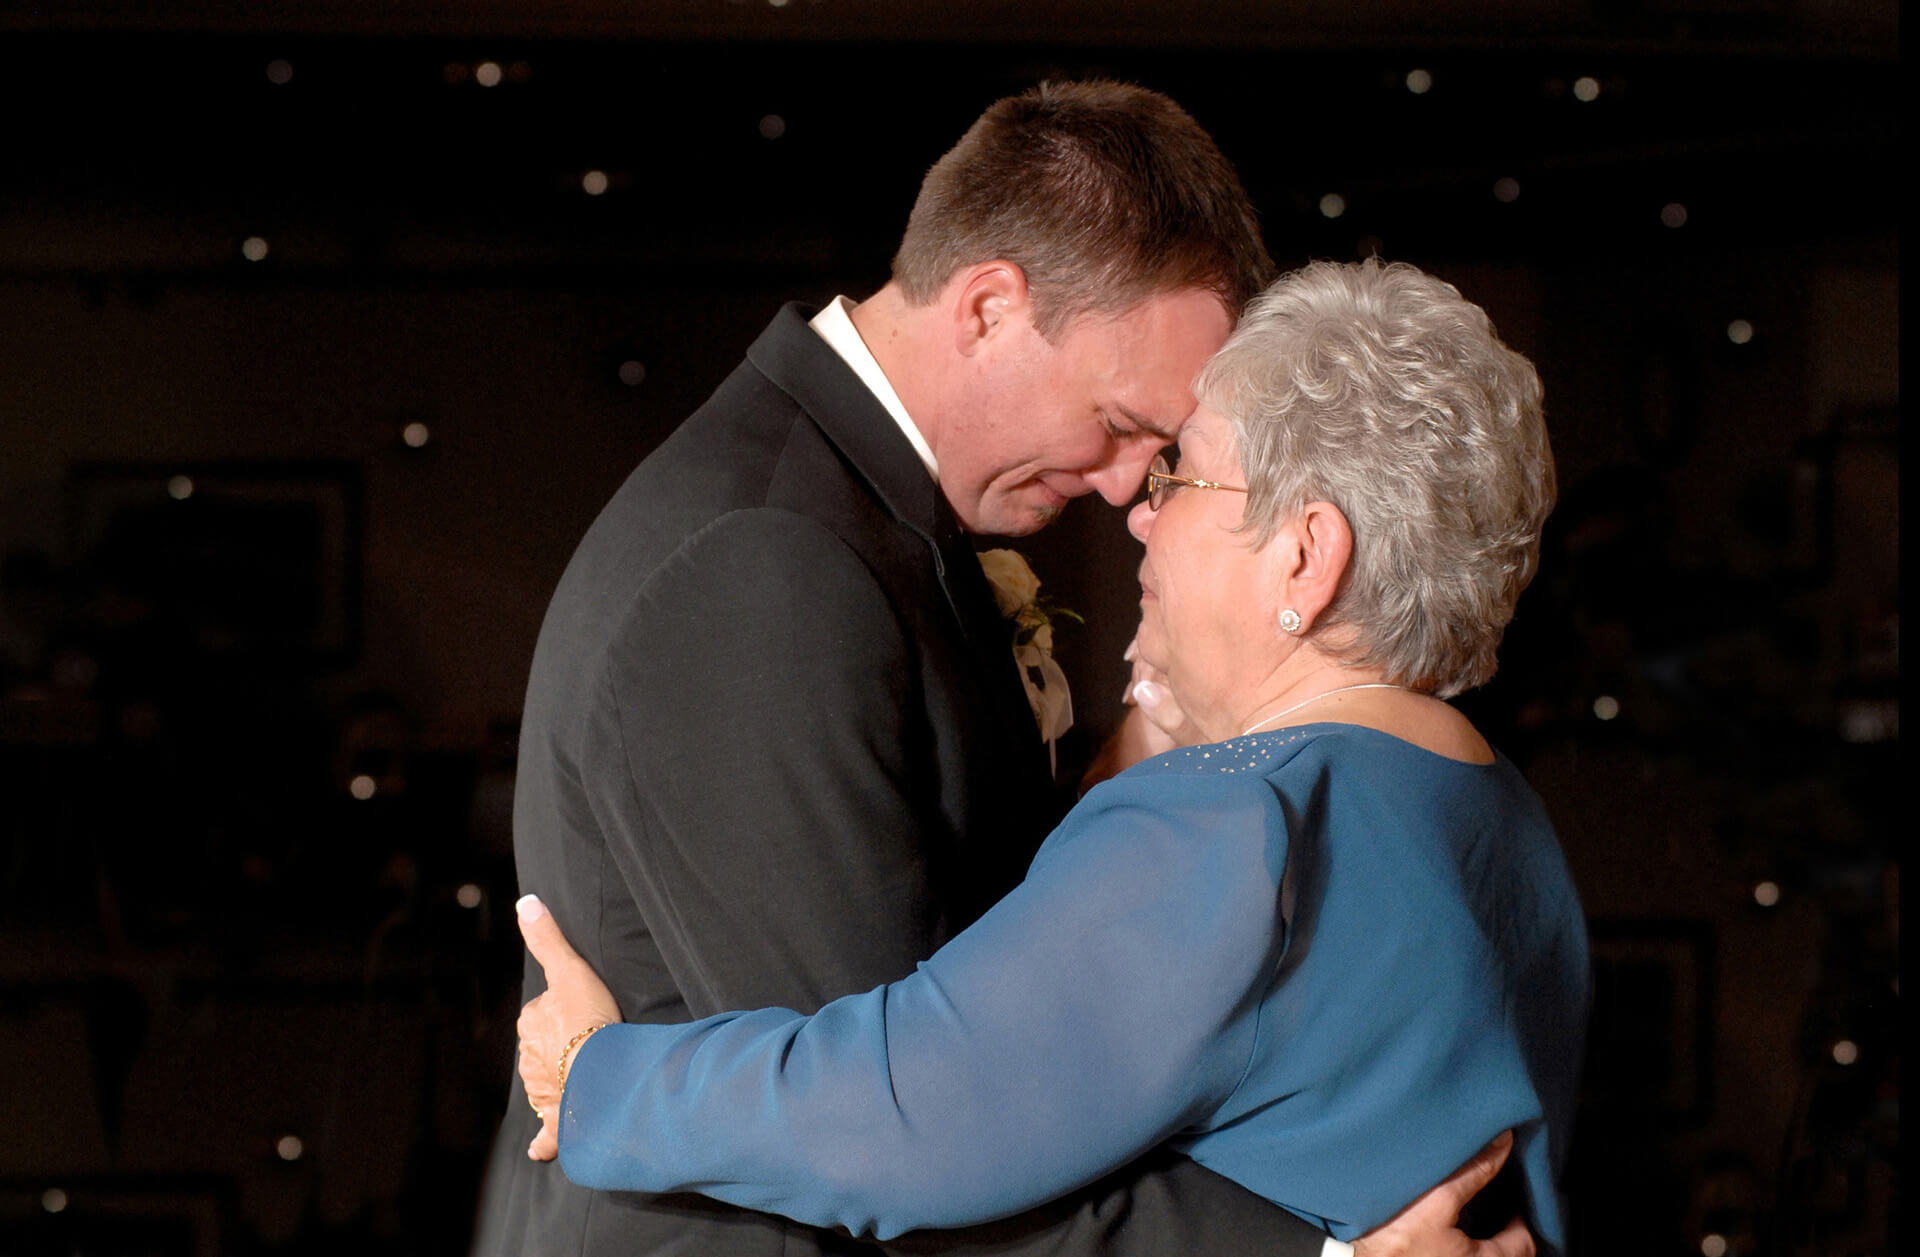 A Lake Orion, Michigan groom cries as he dances with his mother at his wedding as captured by one of the most affordable Michigan wedding photojournalists.